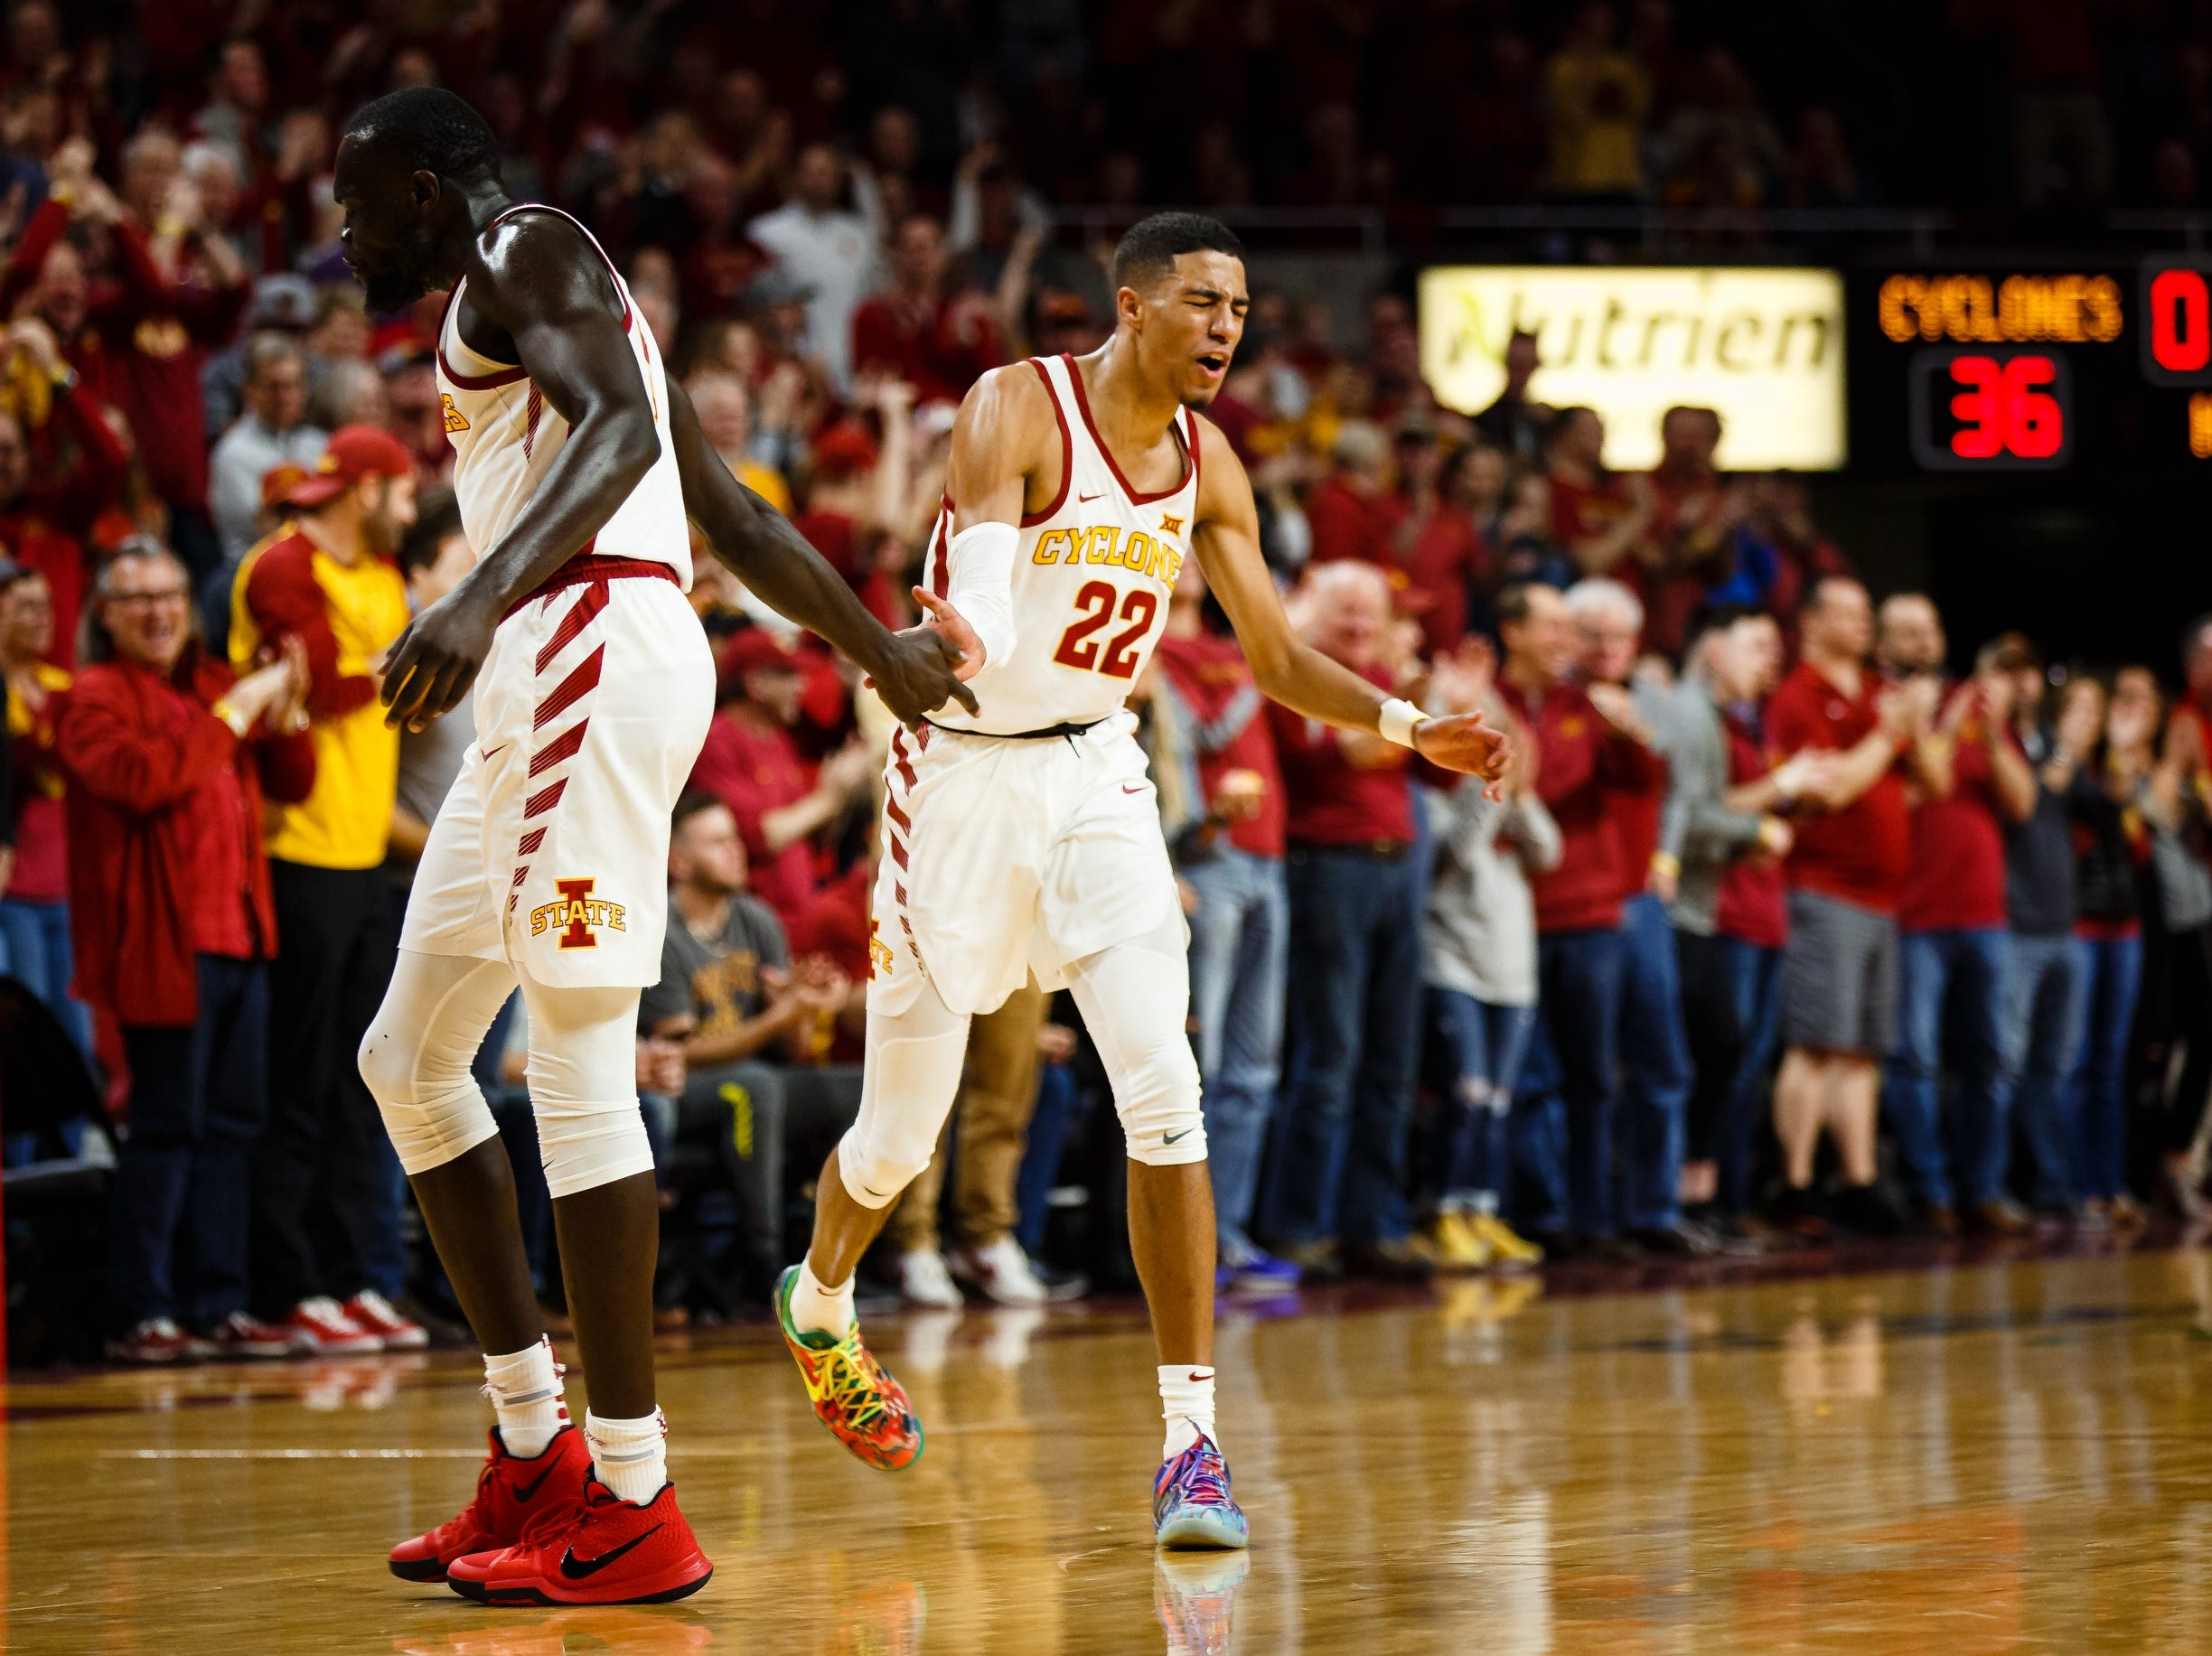 Iowa State's Tyrese Haliburton (22) and Iowa State's Marial Shayok (3) celebrate after a big three pointer during the first half of their basketball game on Saturday, Jan. 5, 2019, in Ames.